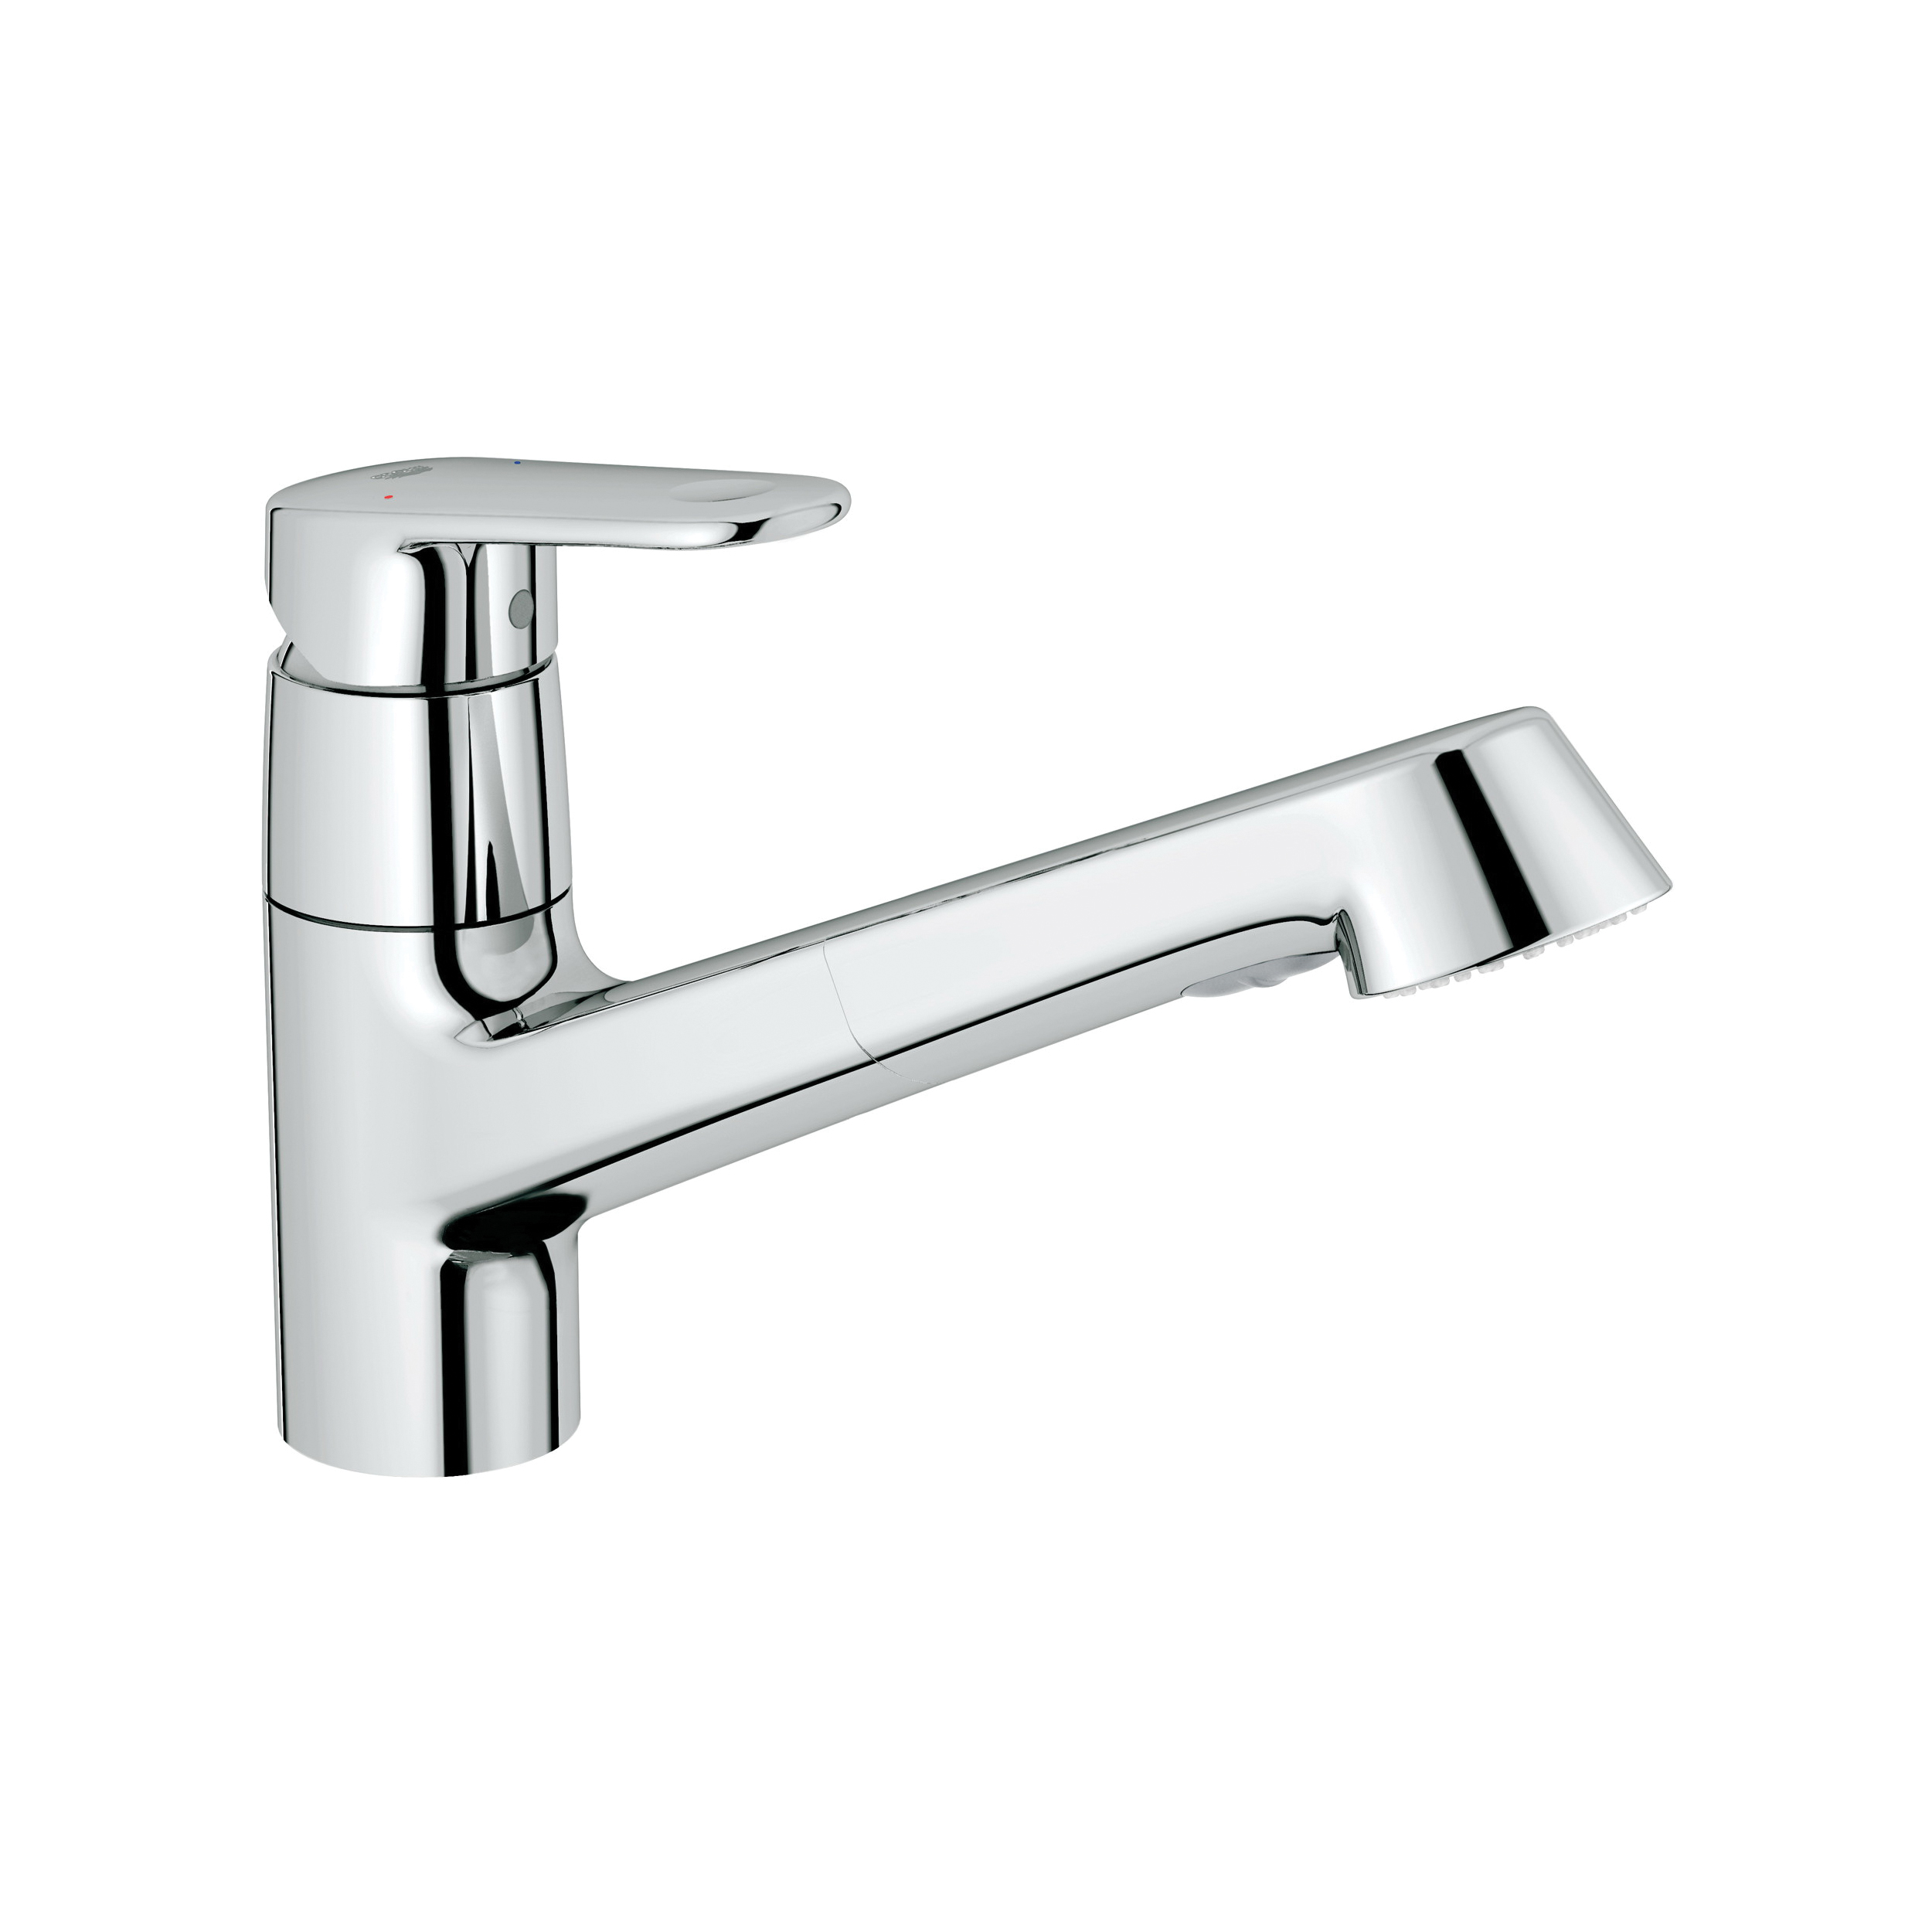 GROHE 32946002 Europlus Sink Mixer, 1.75 gpm, 1 Faucet Hole, Chrome Plated, 1 Handle, Import